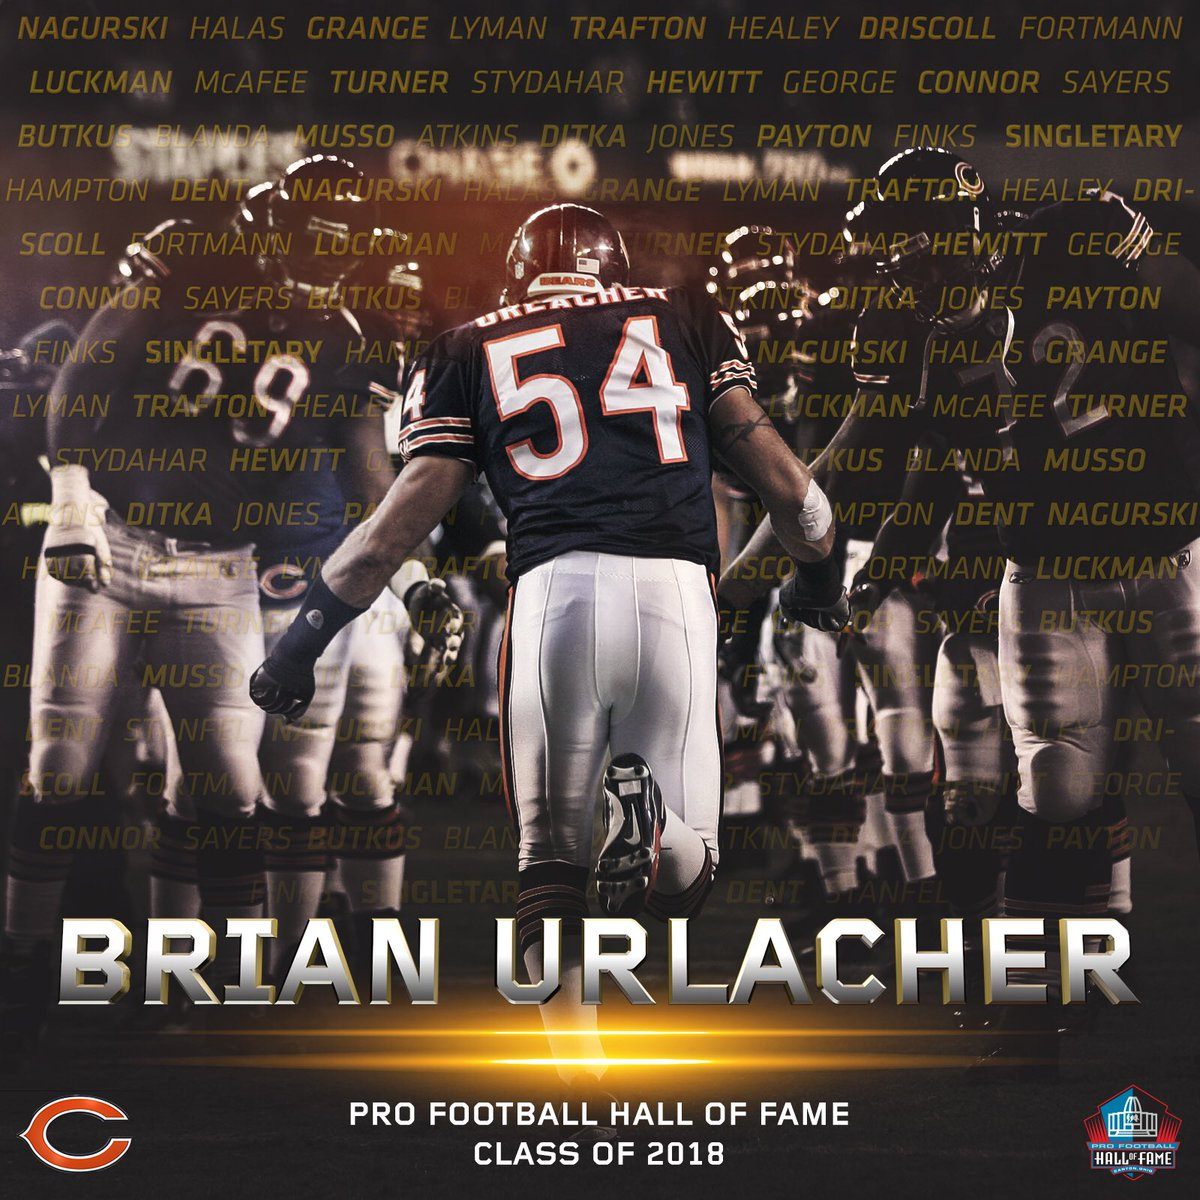 in welcome to canton brian urlacher pfhof18 fca8db2af